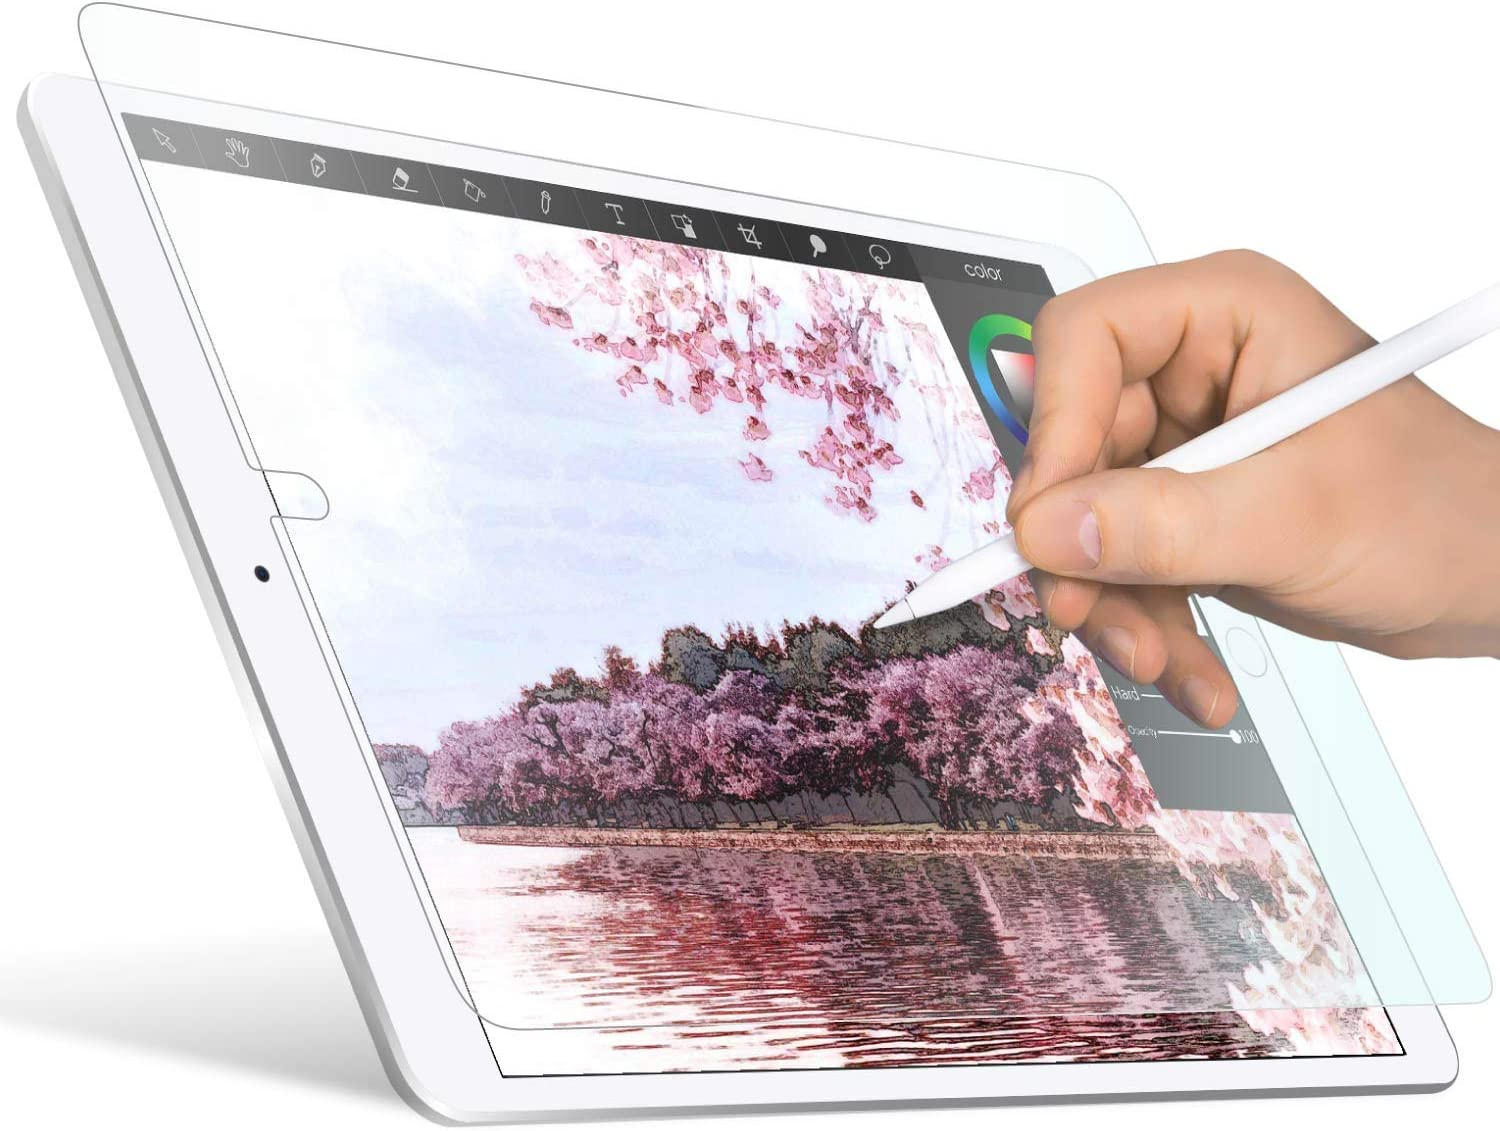 ELECOM Pencil-Feel Screen Protector Compatible with iPad Pro 12.9inch (2018,2020 Model), Designed for Drawing, Anti-Glare Scratch-Resistant,Japan-Made *Smoothness 80*(TB-A20PLFLAPL)